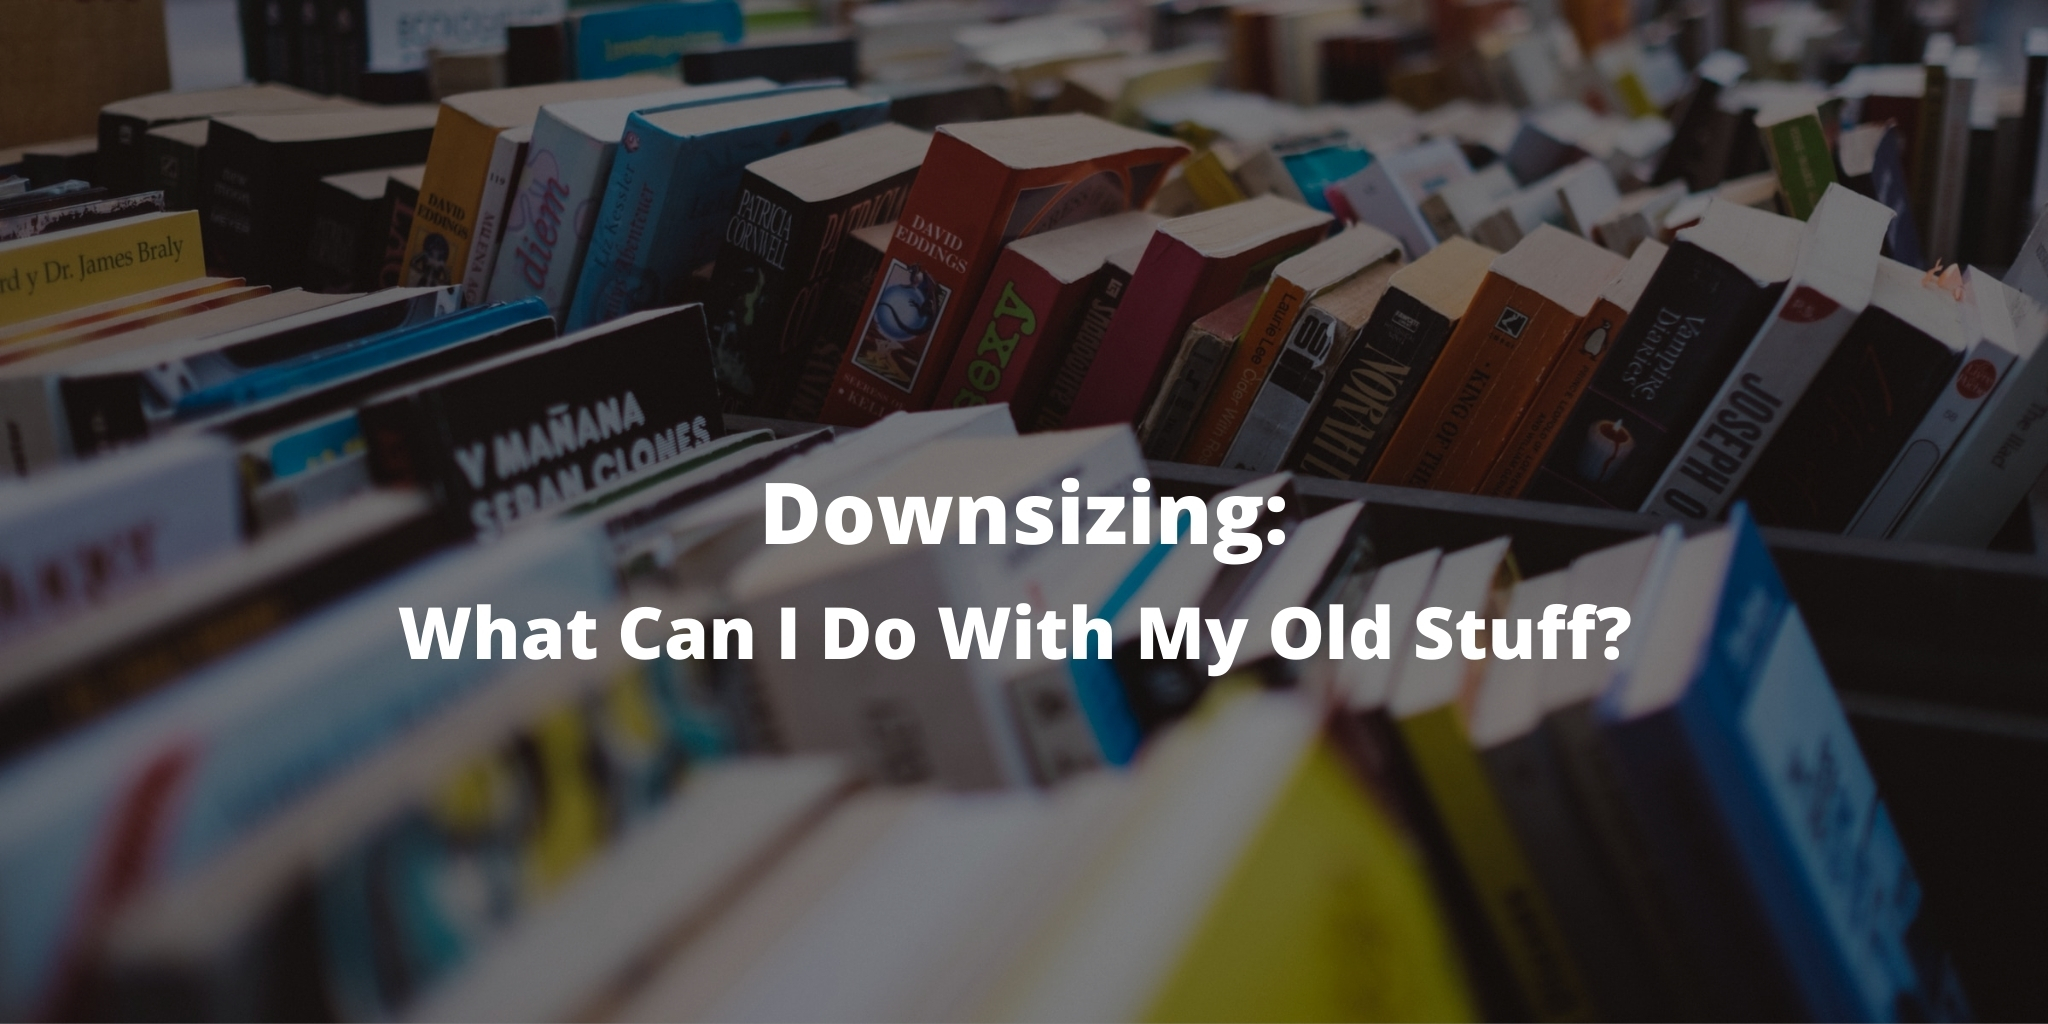 Downsizing: What Can I Do With My Old Stuff?